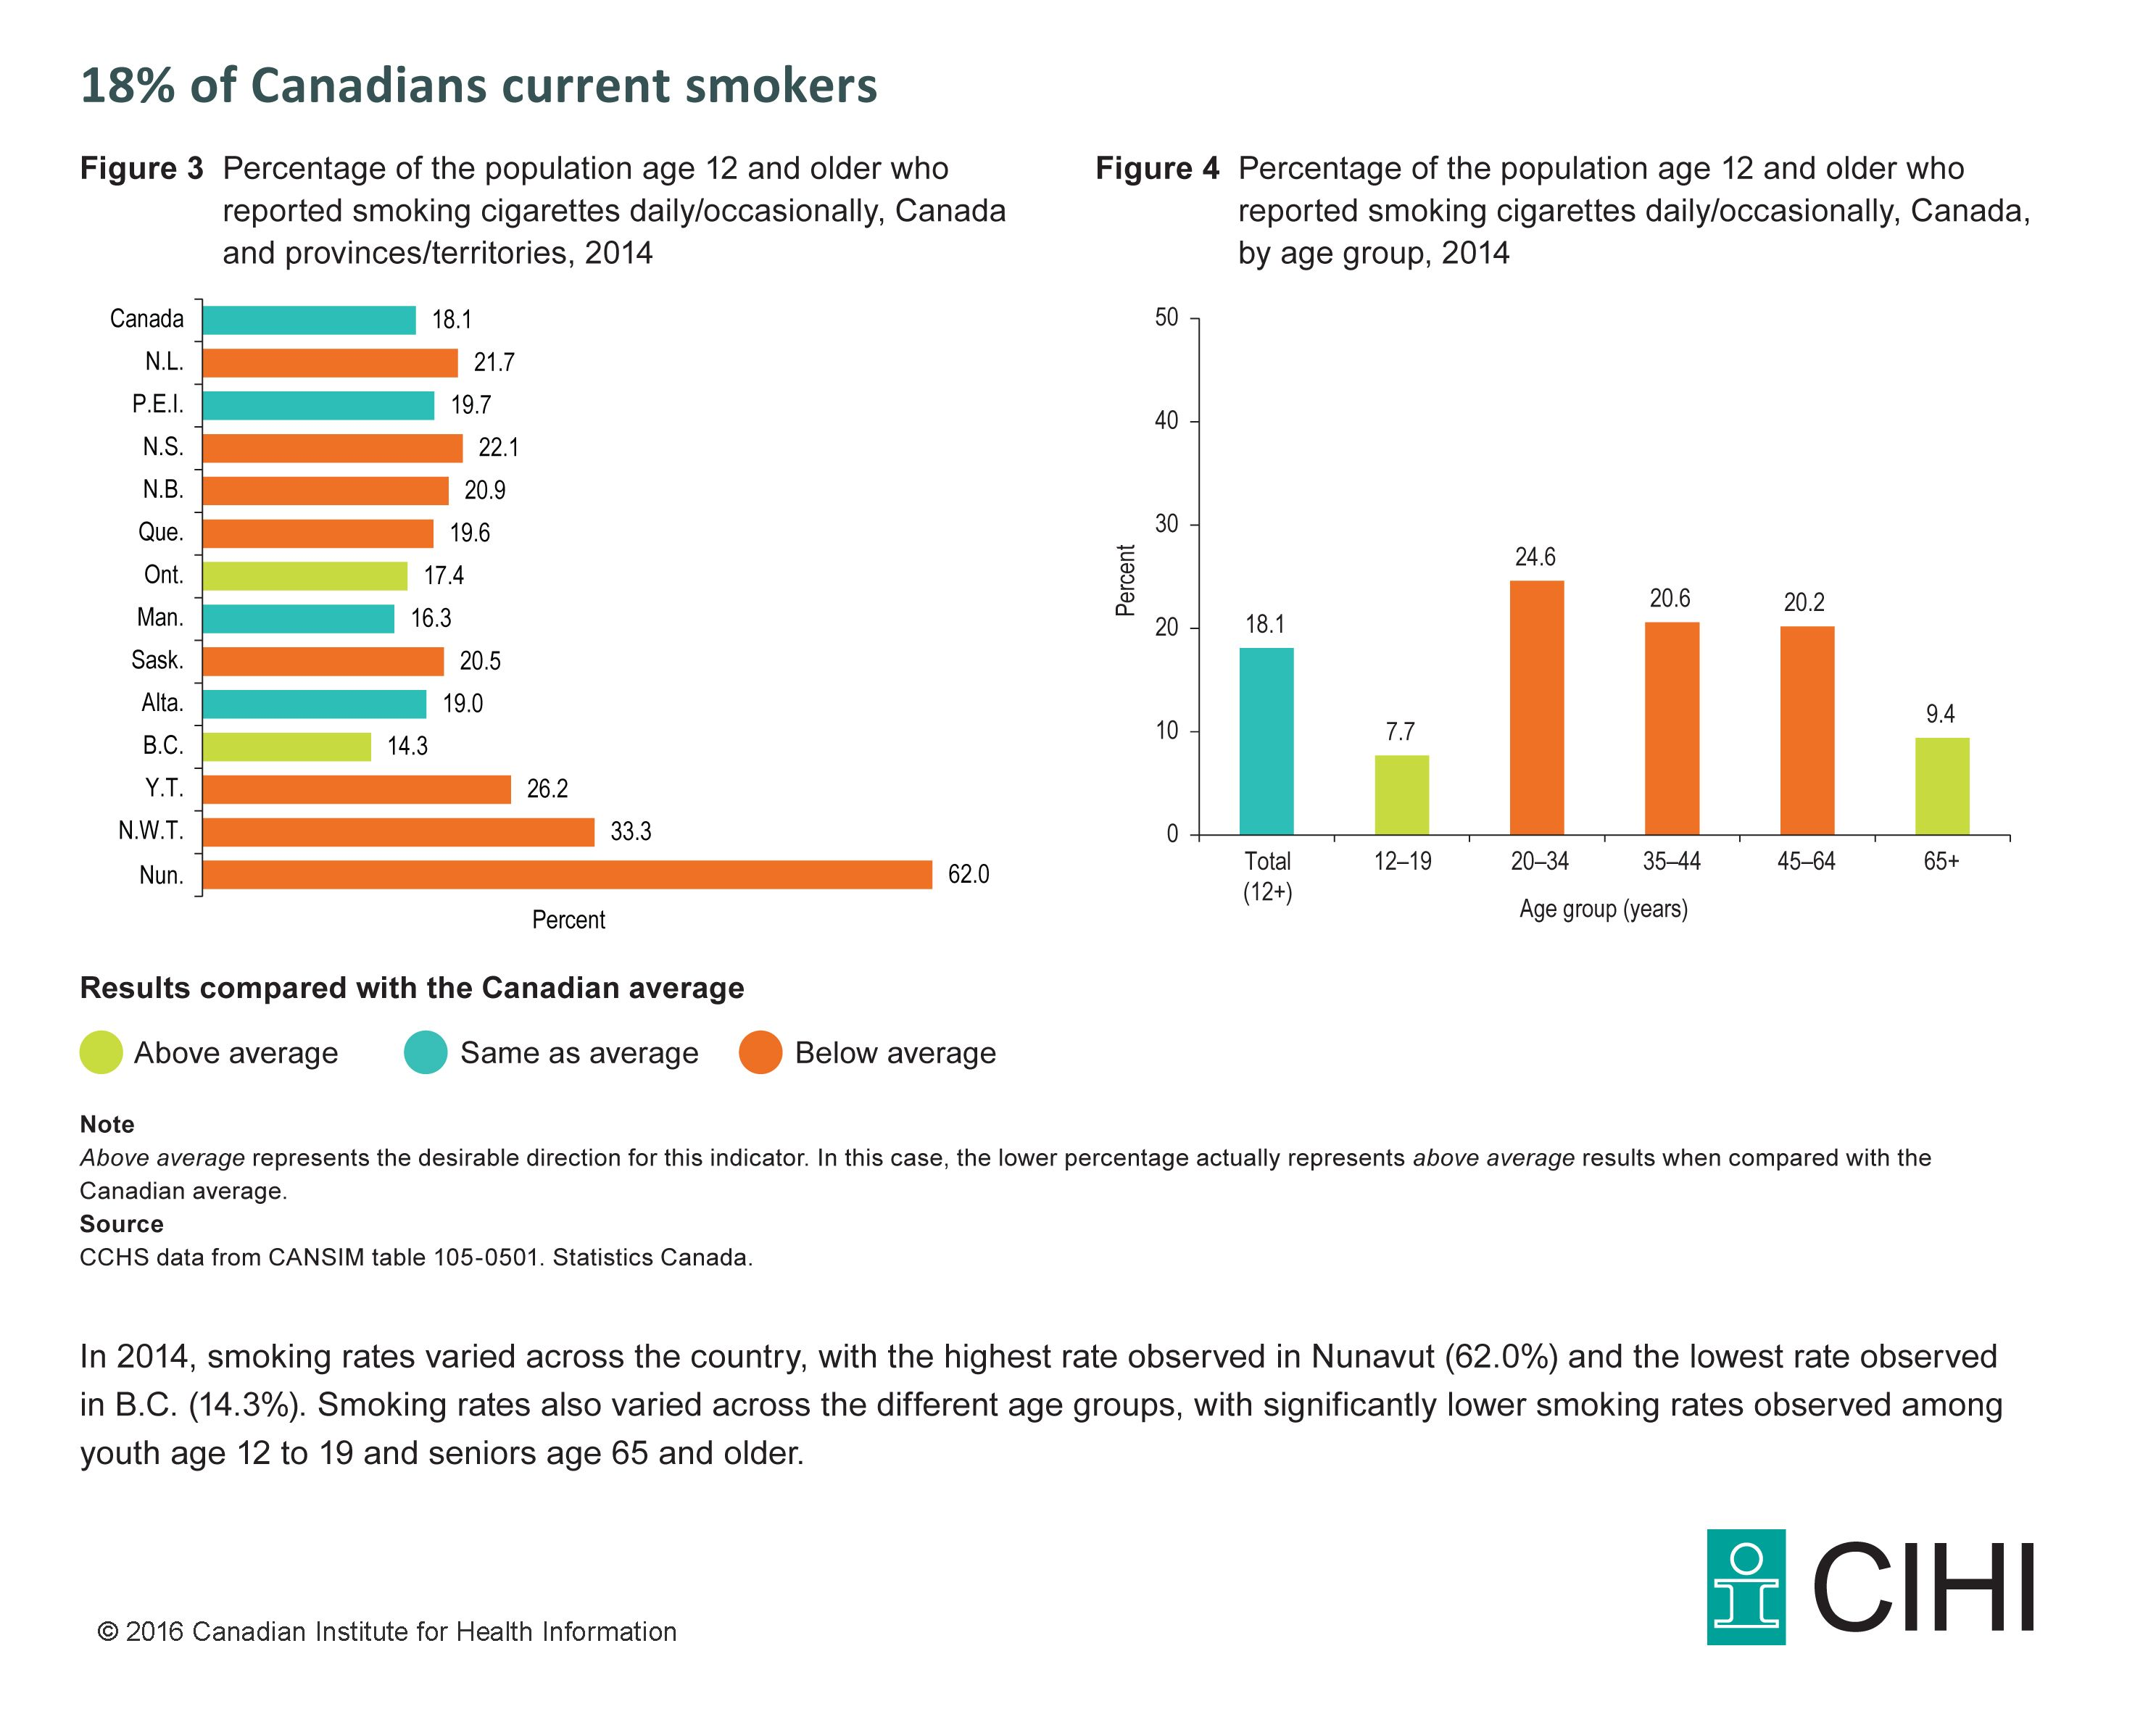 Figure 3: Percentage of the population age 12 and older who reported smoking cigarettes daily/occasionally, Canada and provinces/territories, 2014  Figure 4: Percentage of the population age 12 and older who reported smoking cigarettes daily/occasionally, Canada, by age group, 2014